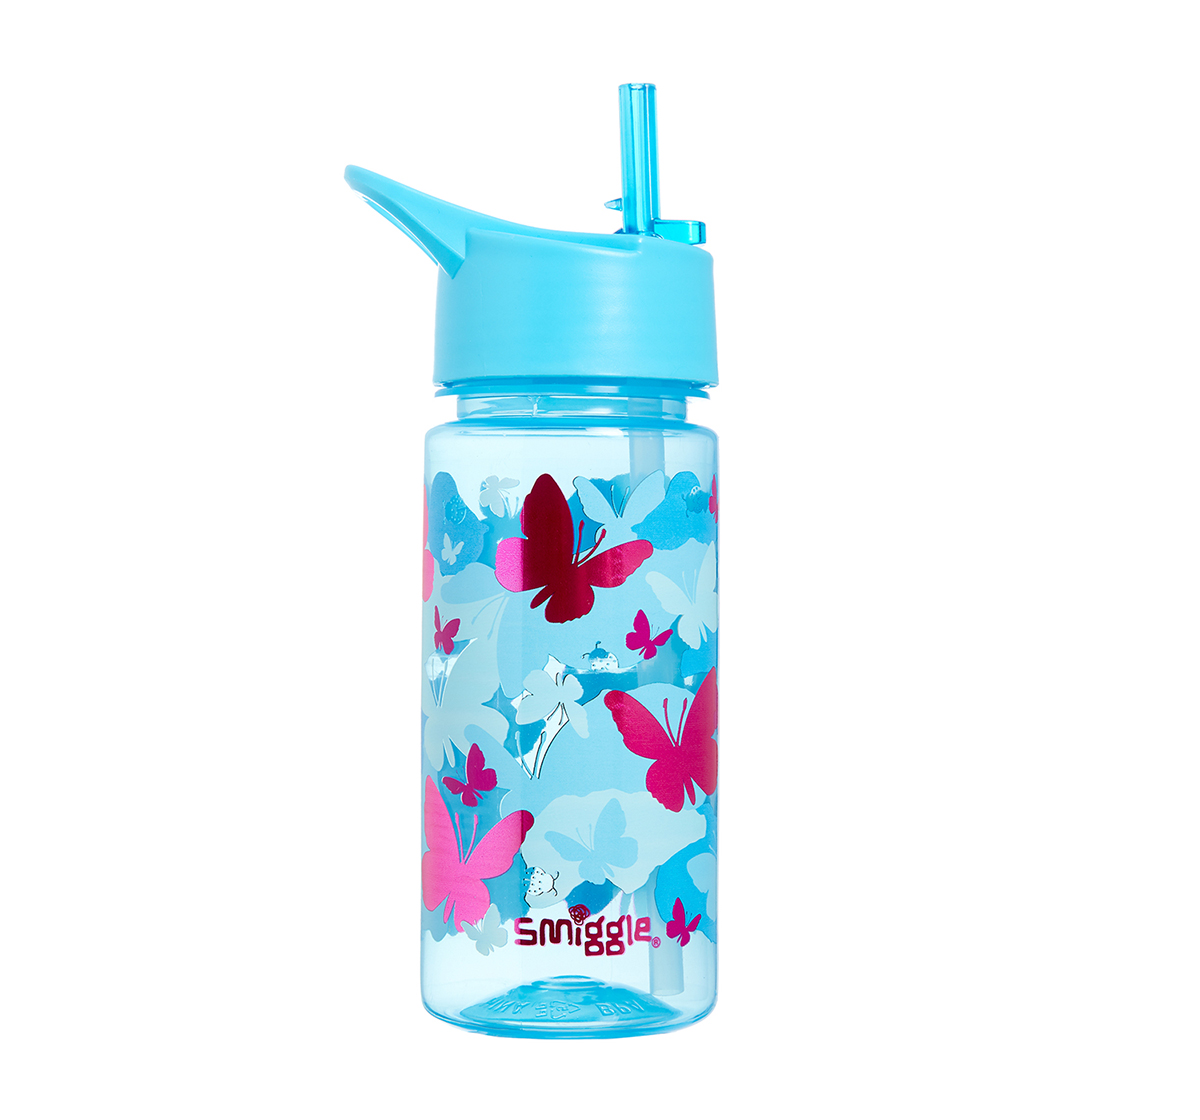 Smiggle   Smiggle Giggle Bottle with Flip Top Spout - Butterfly Print Bags for Kids age 3Y+ (Blue)